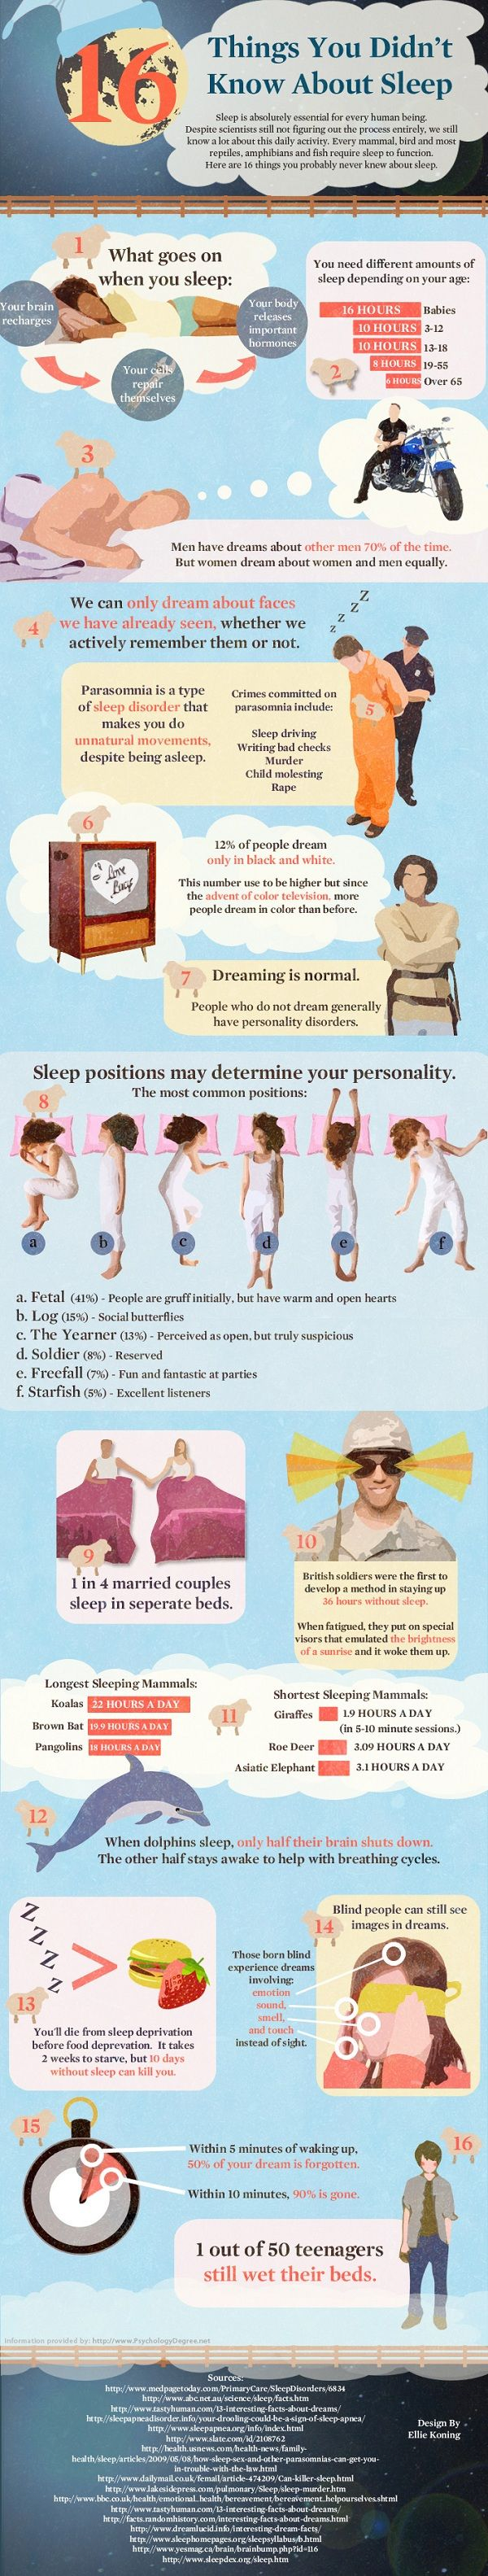 16 Things You Didn't Know About Sleep... number 4 freaks me out! I'm afraid I'll sleep walk or something!